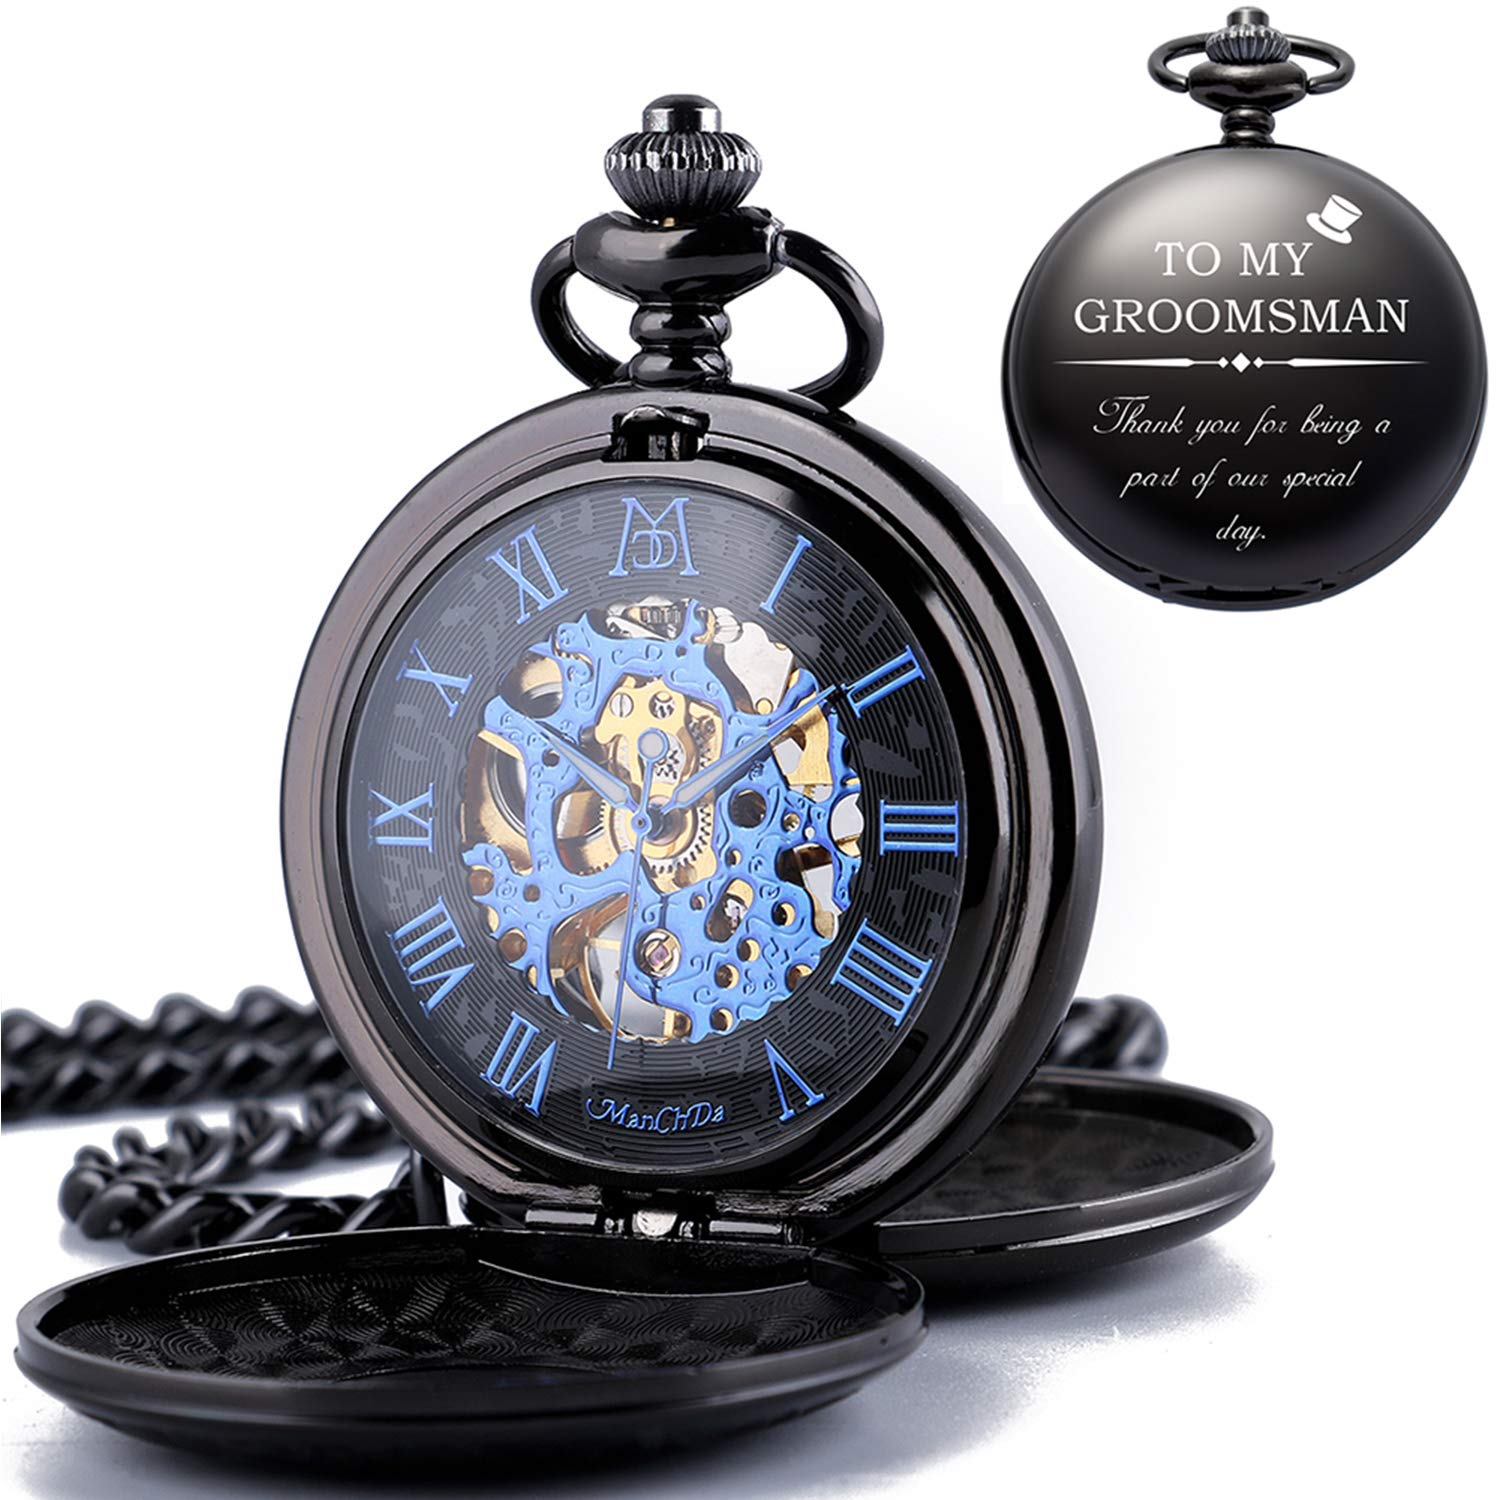 ManChDa Mechanical Groomsman Present Double Cover Skeleton Engraved Pocket Watches with Gift Box and Chain Customized Customization Custom Engraving for Wedding Groomsman Bestman